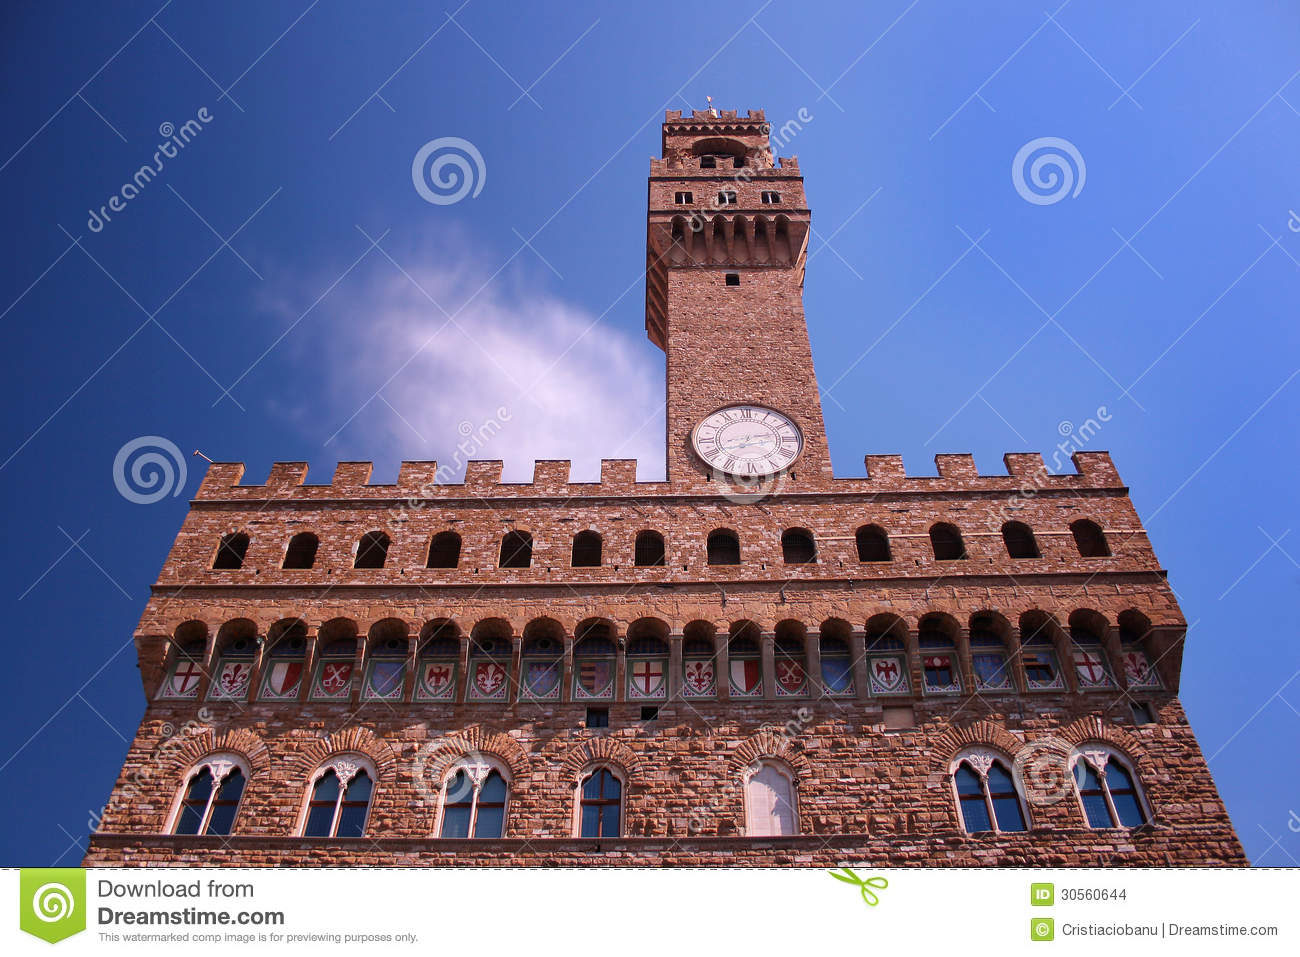 palazzo vecchio old palacein florence italy stock photo image of